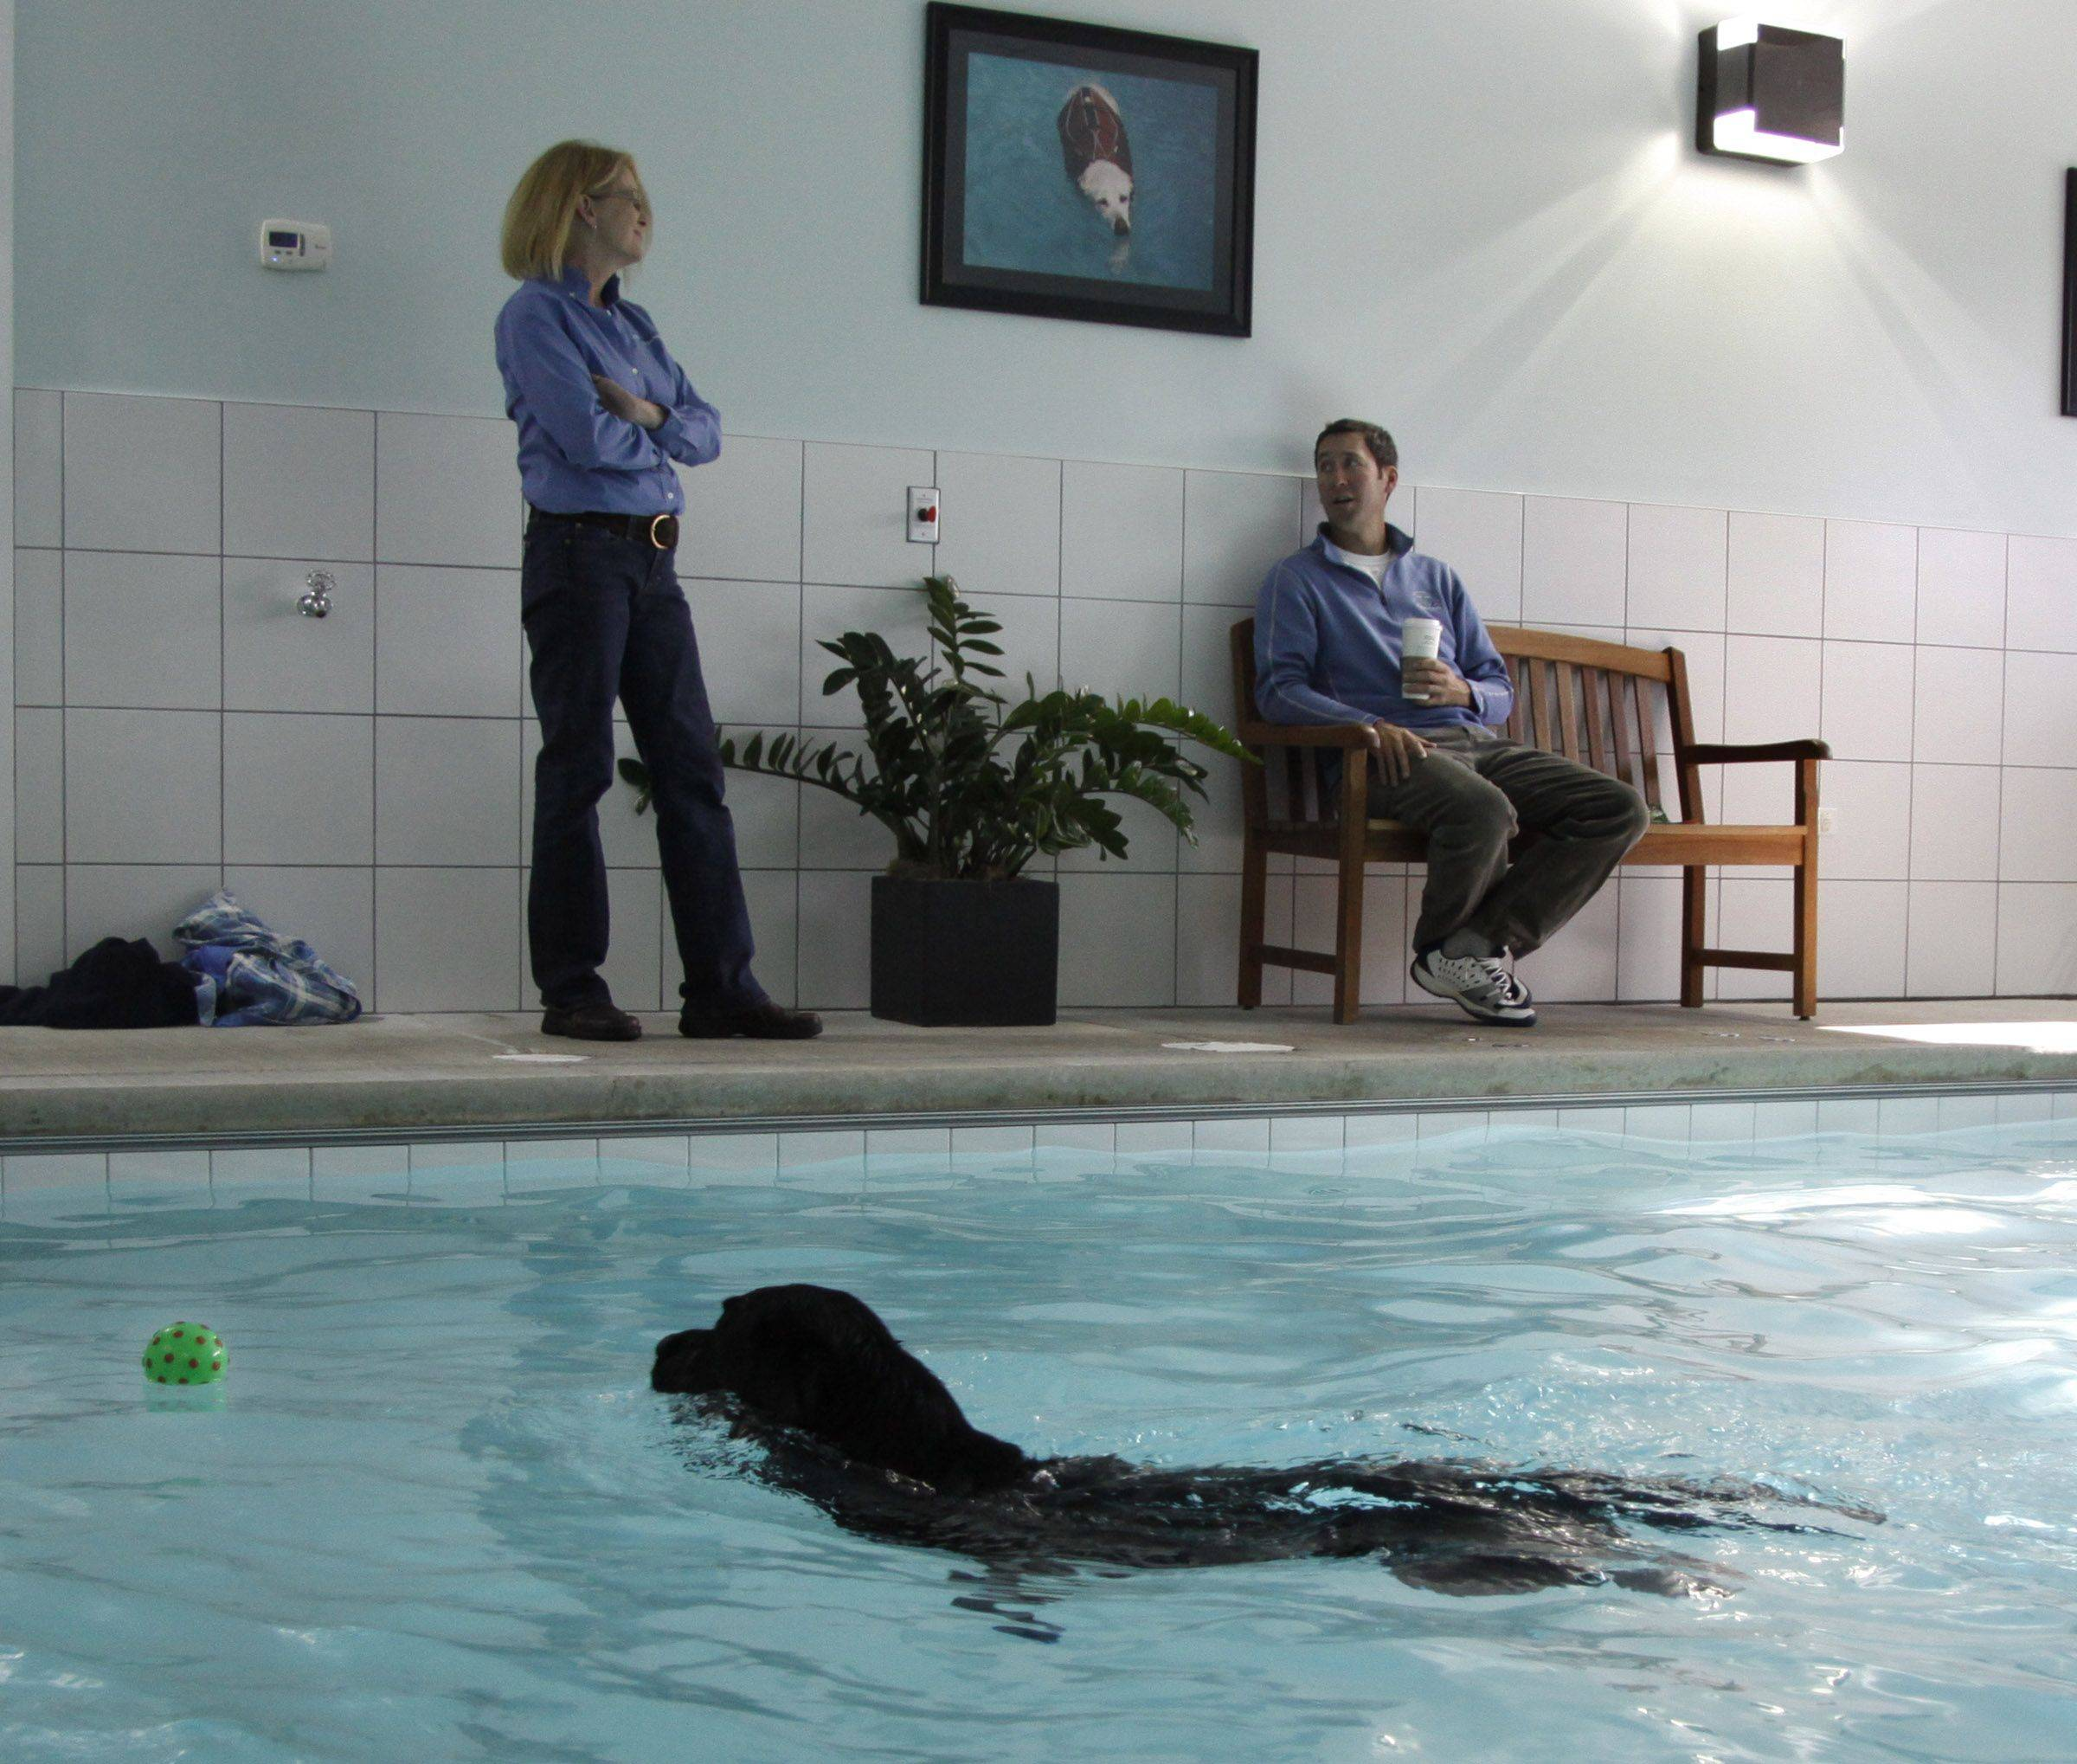 Ringo swims past his owner Paul Garvin of Hinsdale and Natural Healing owner Lee Deaton on his way to retrieve a ball in the pool.